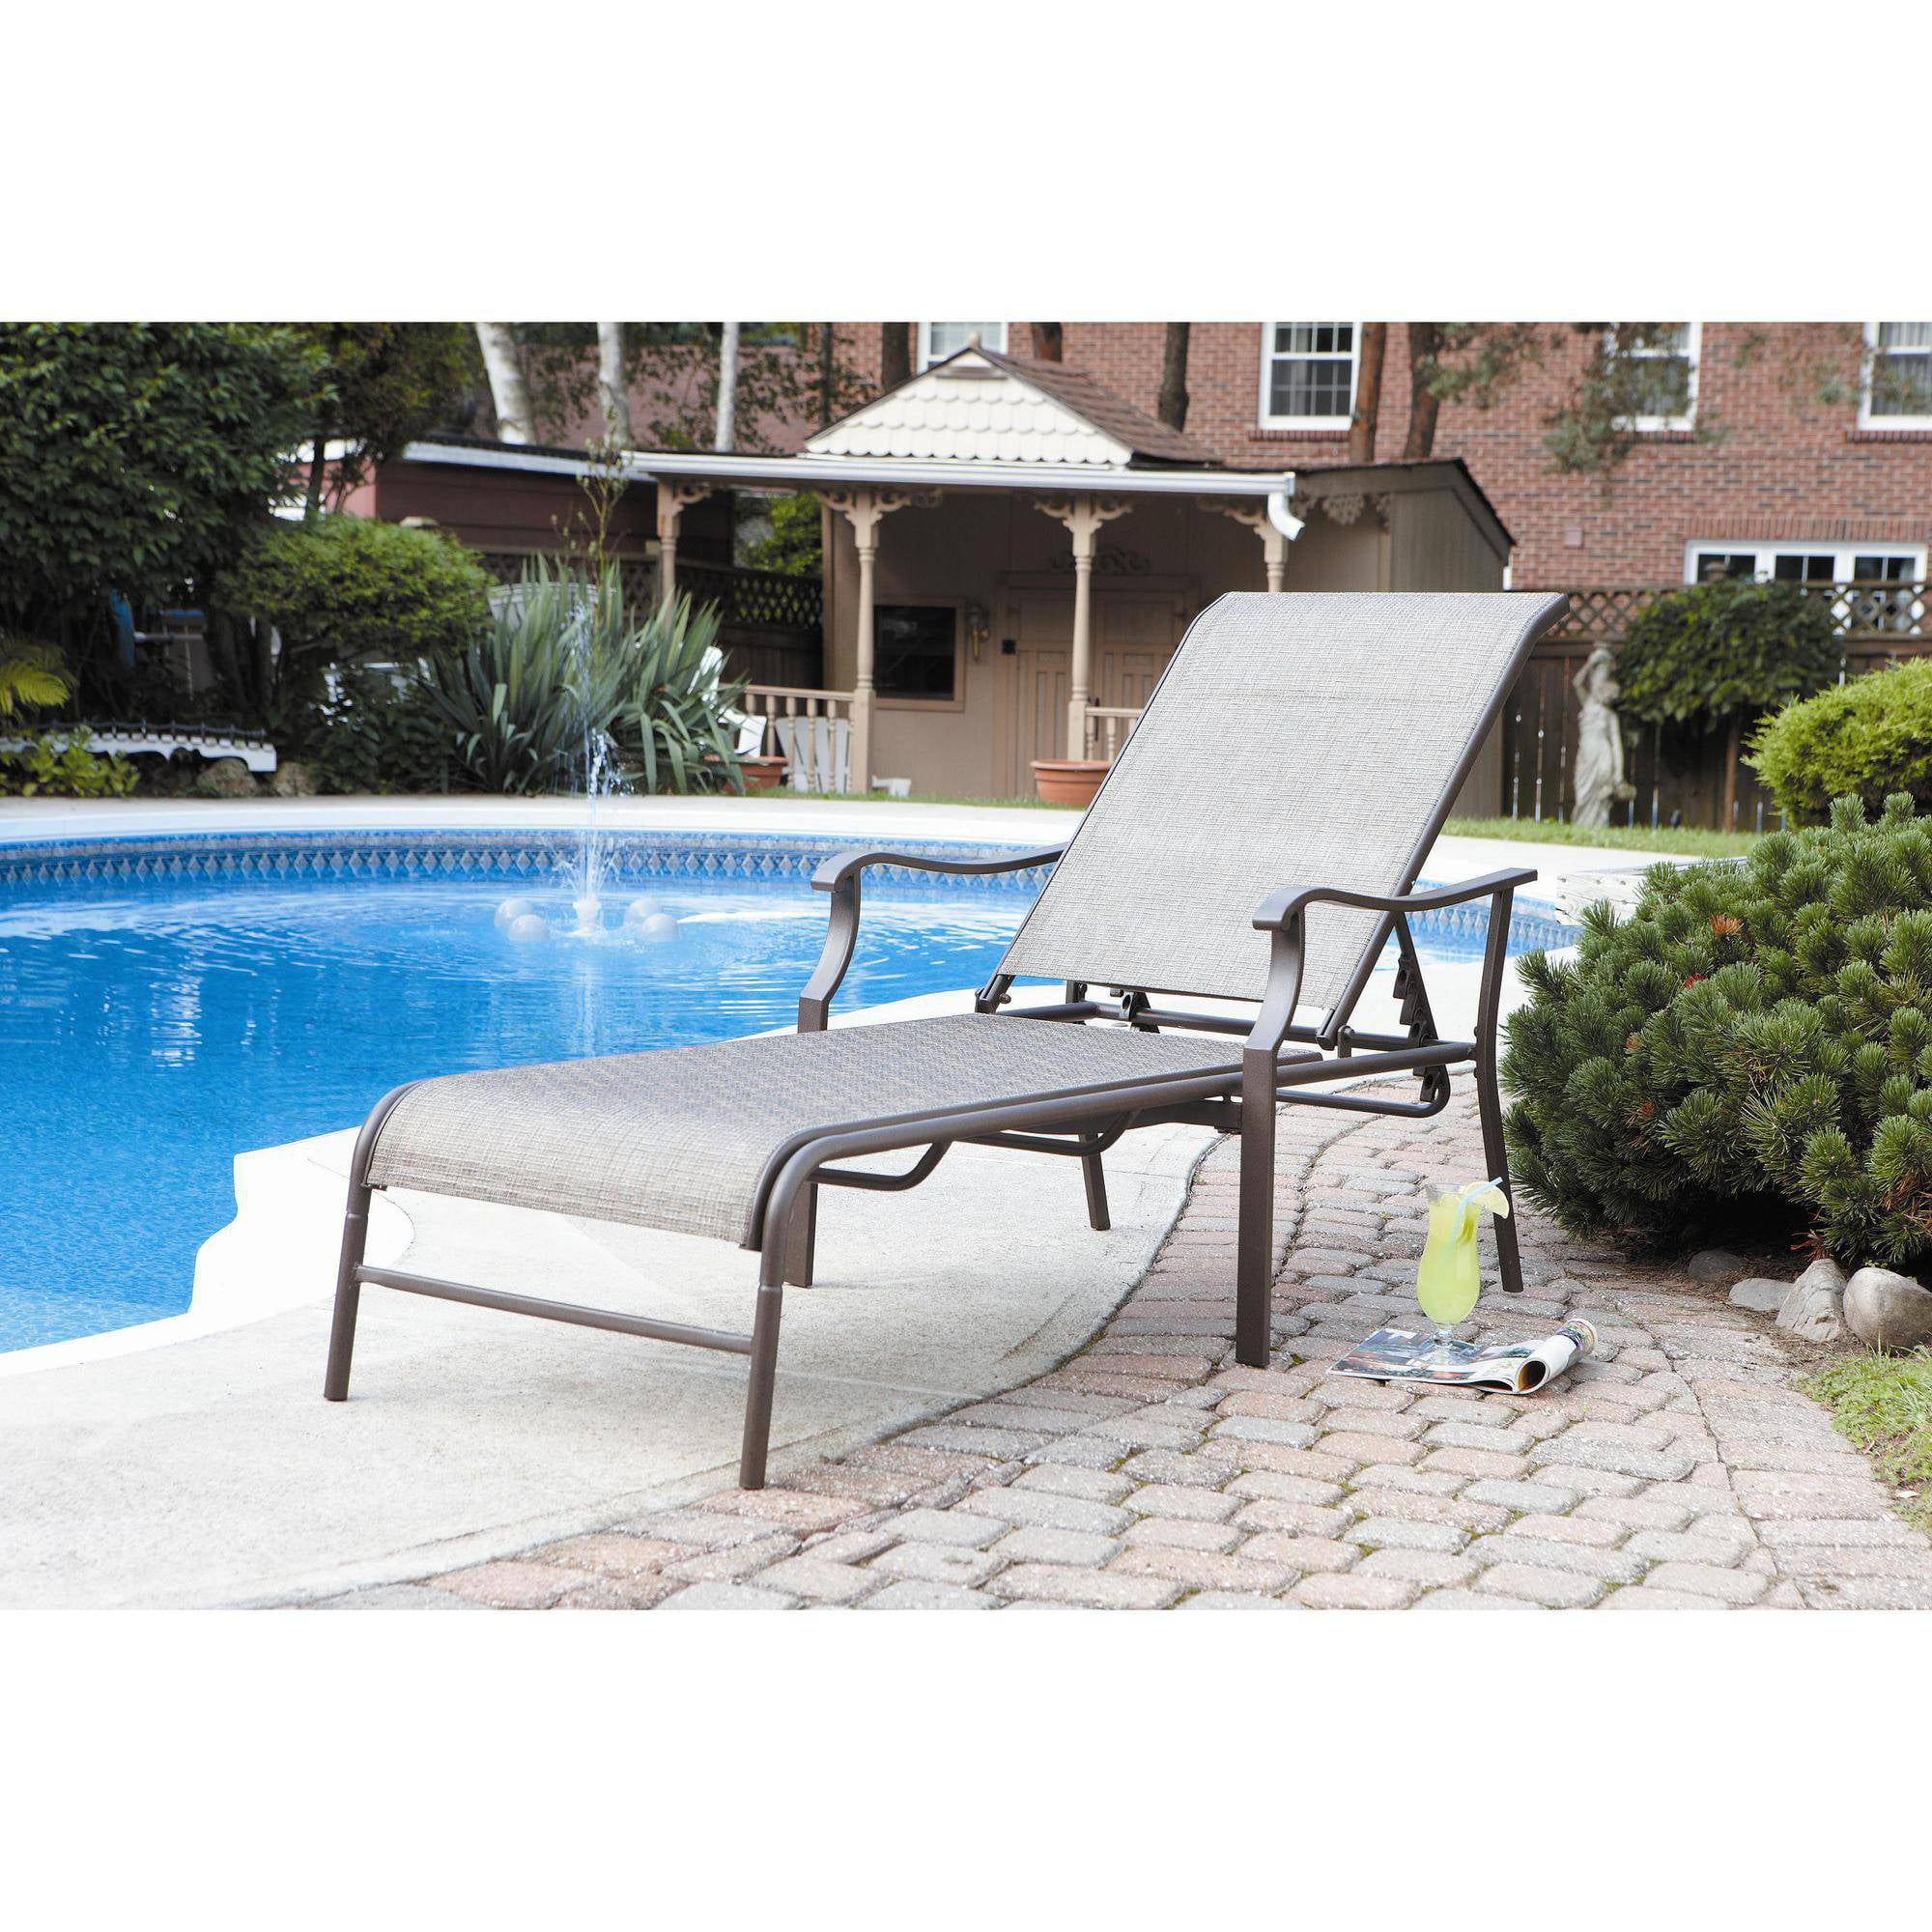 Aspen Outdoor Wicker Adjustable Chaise Lounges w Cushions Set of